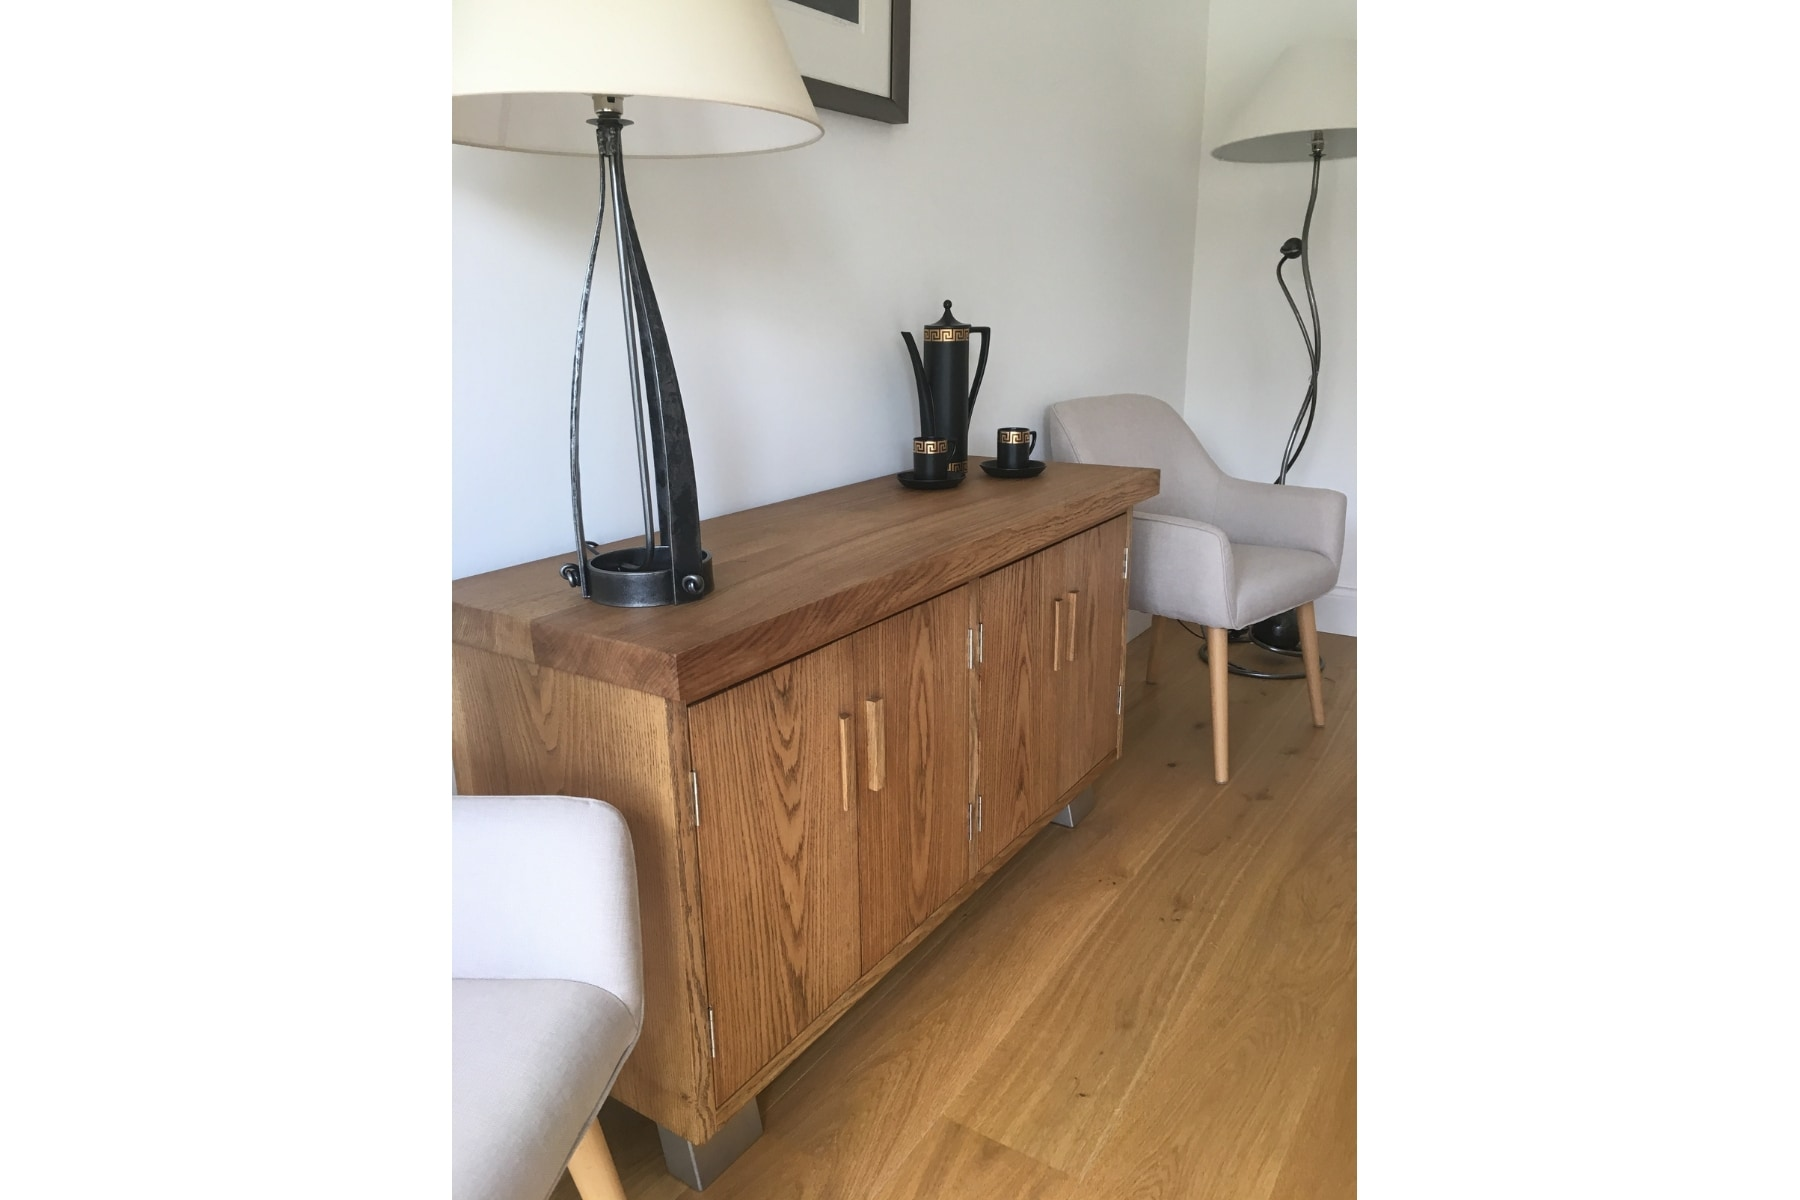 Large oak dining table project 513 Abacus Tables image 4